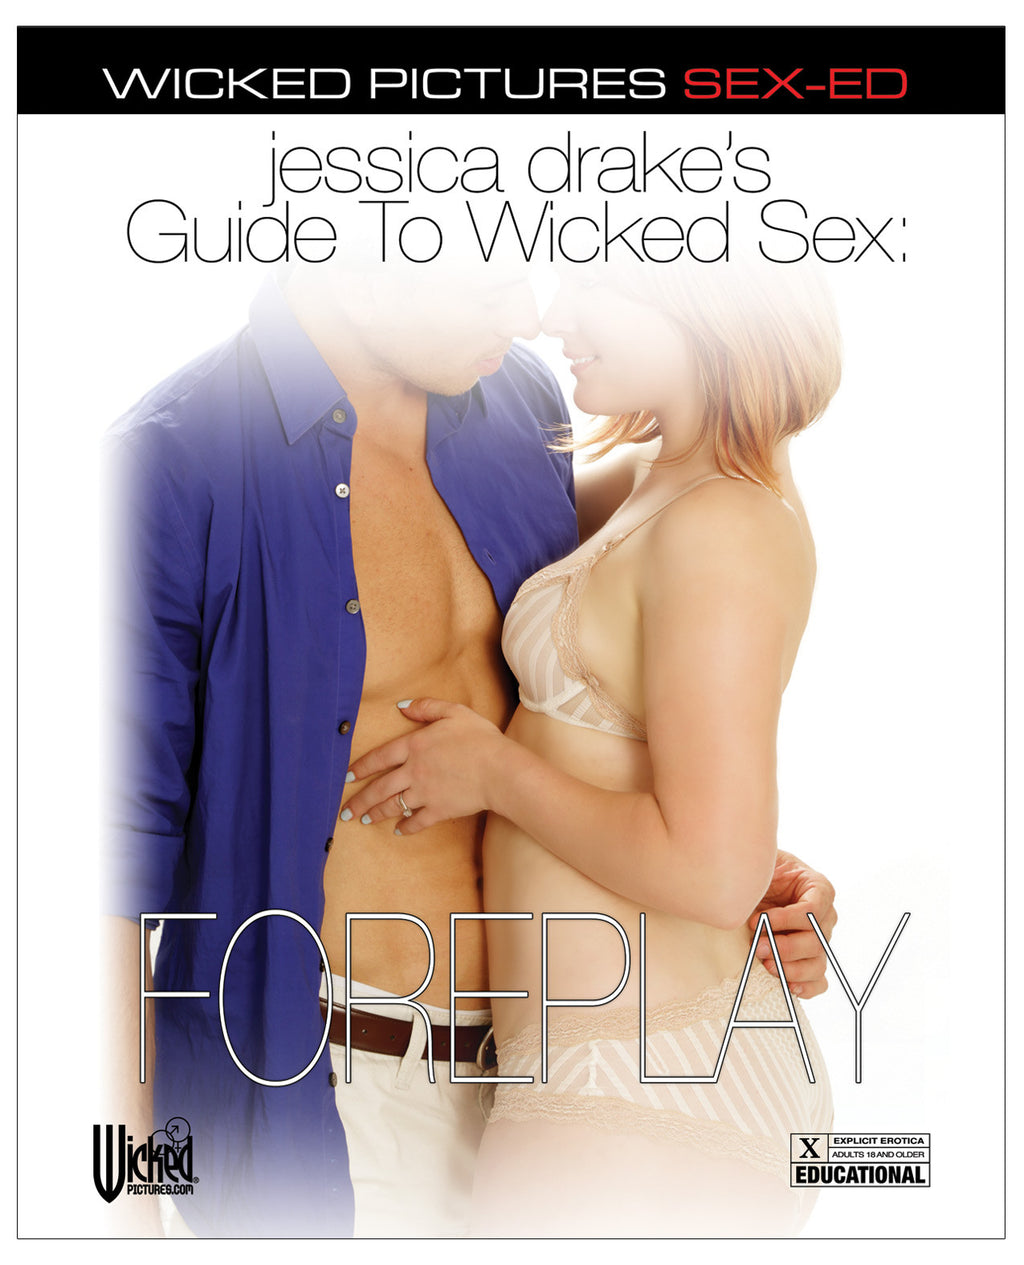 Jessica Drake's Guide to Wicked Sex - Foreplay - Dvd And Video Instructional - The Fallen Angel